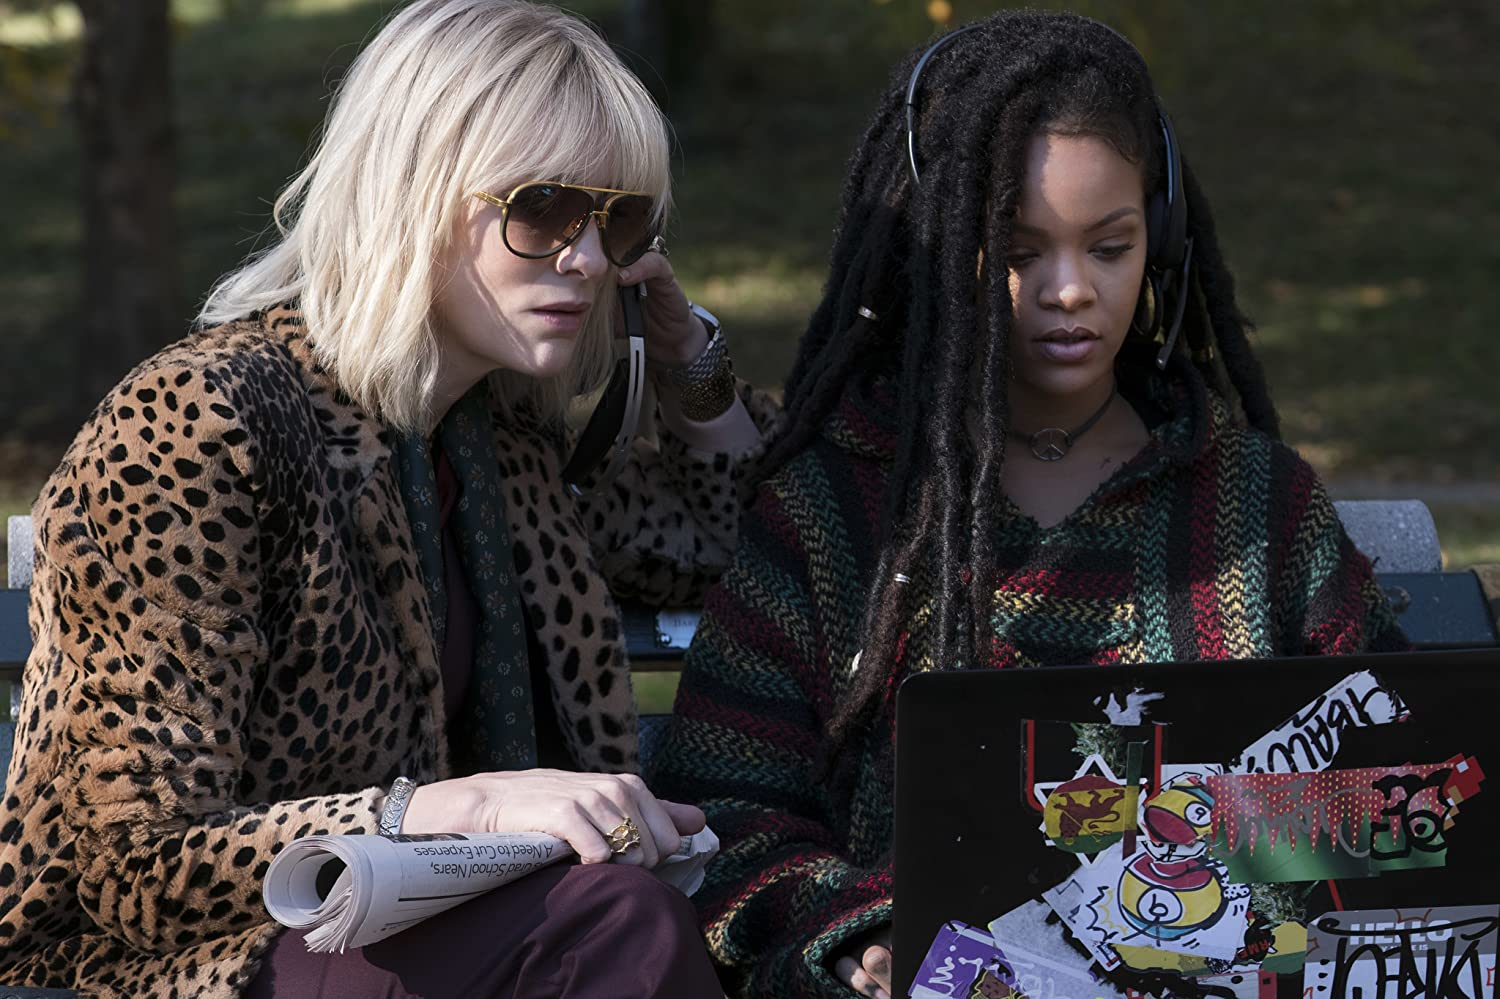 Cate Blanchett and Rihanna in Ocean's 8 (2018)